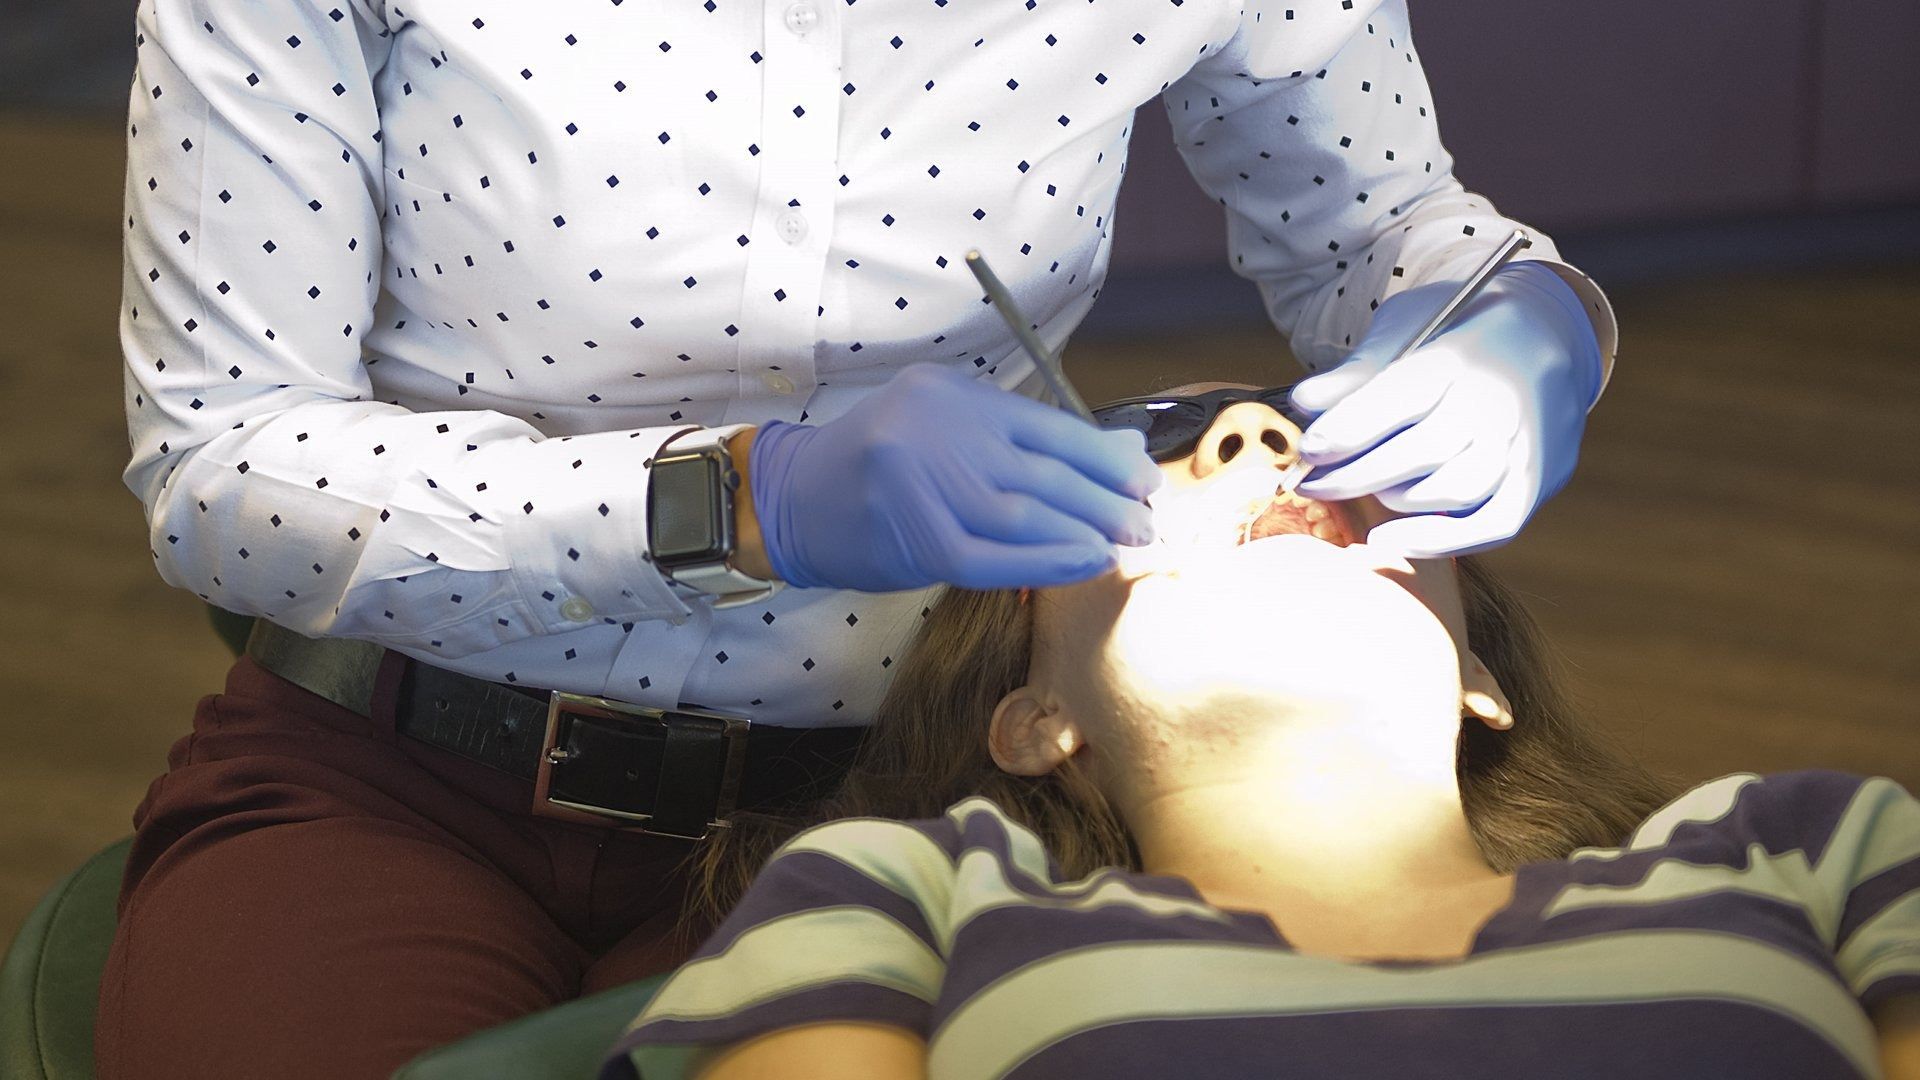 emergency dentist aurora co,pediatric dentist aurora,pediatric dentist aurora co,pediatric dentist aurora colorado